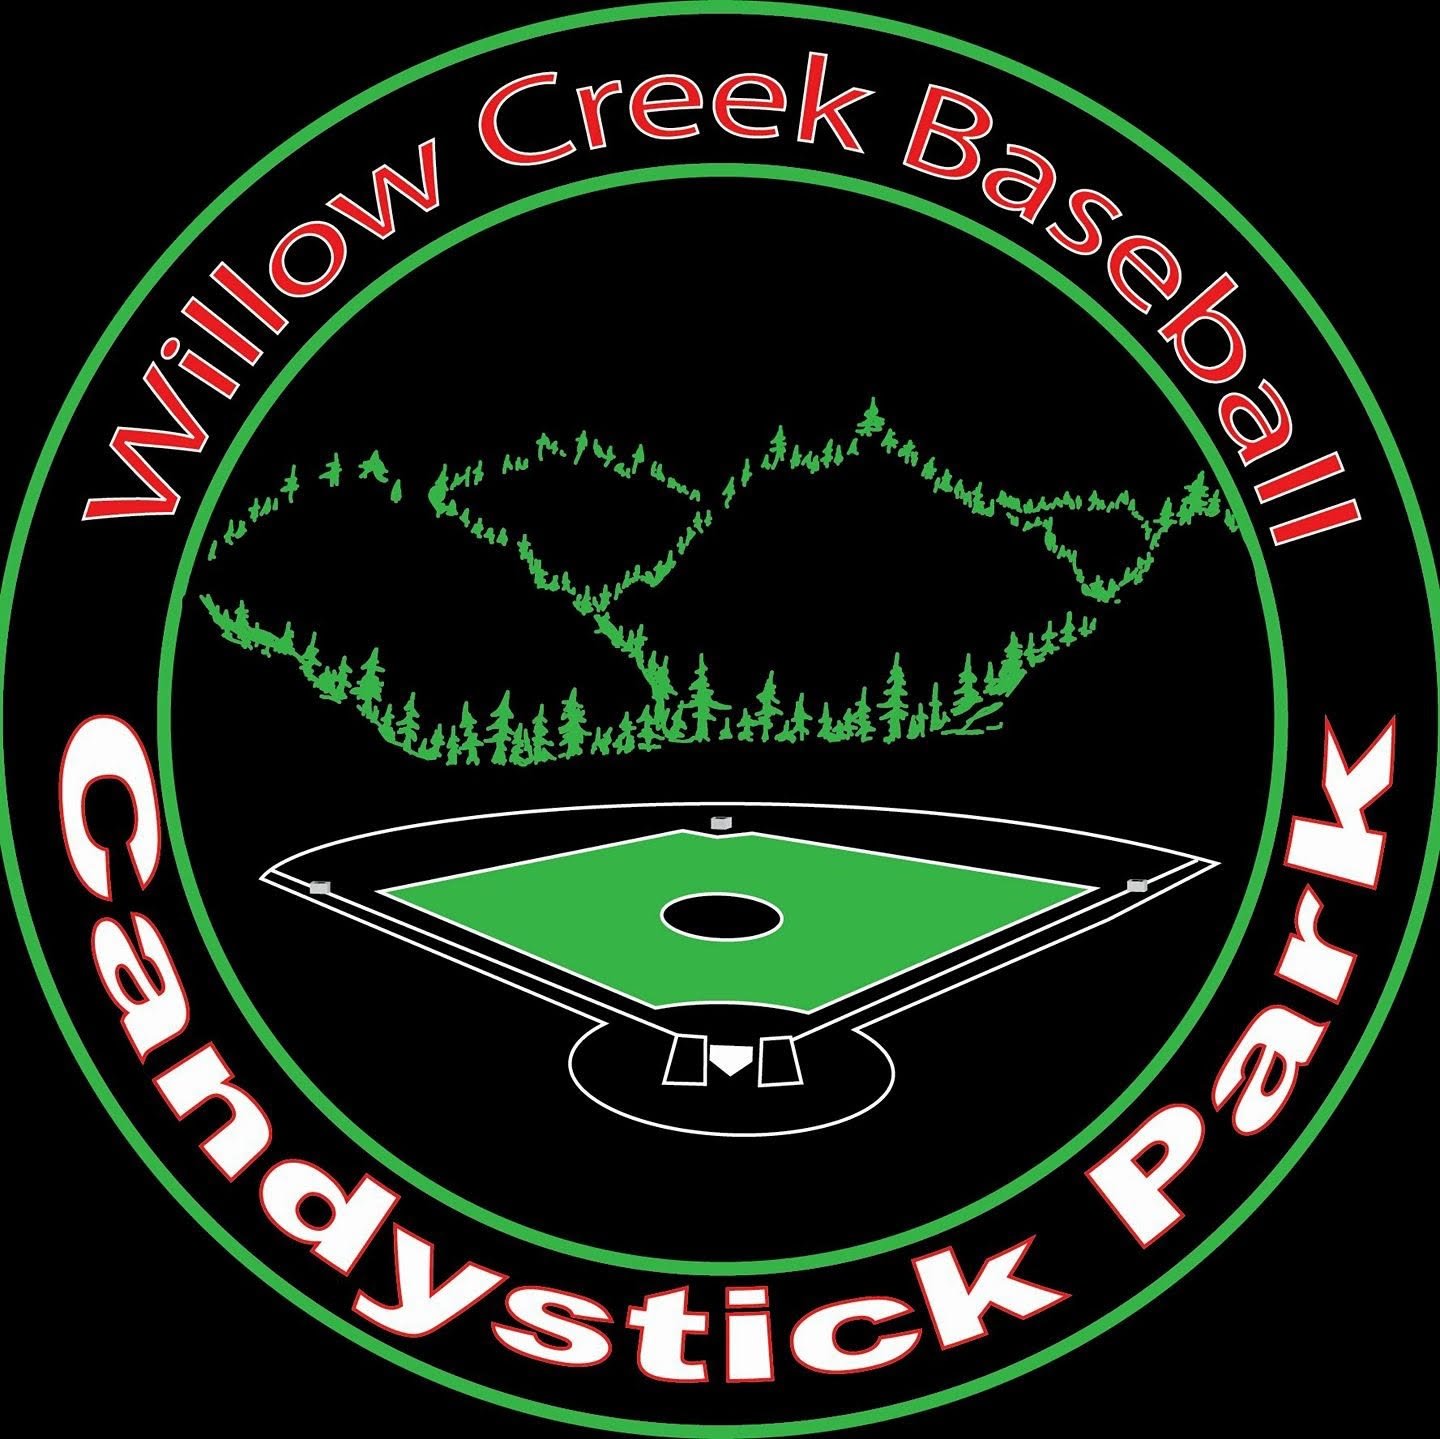 Willow Creek Baseball Commission